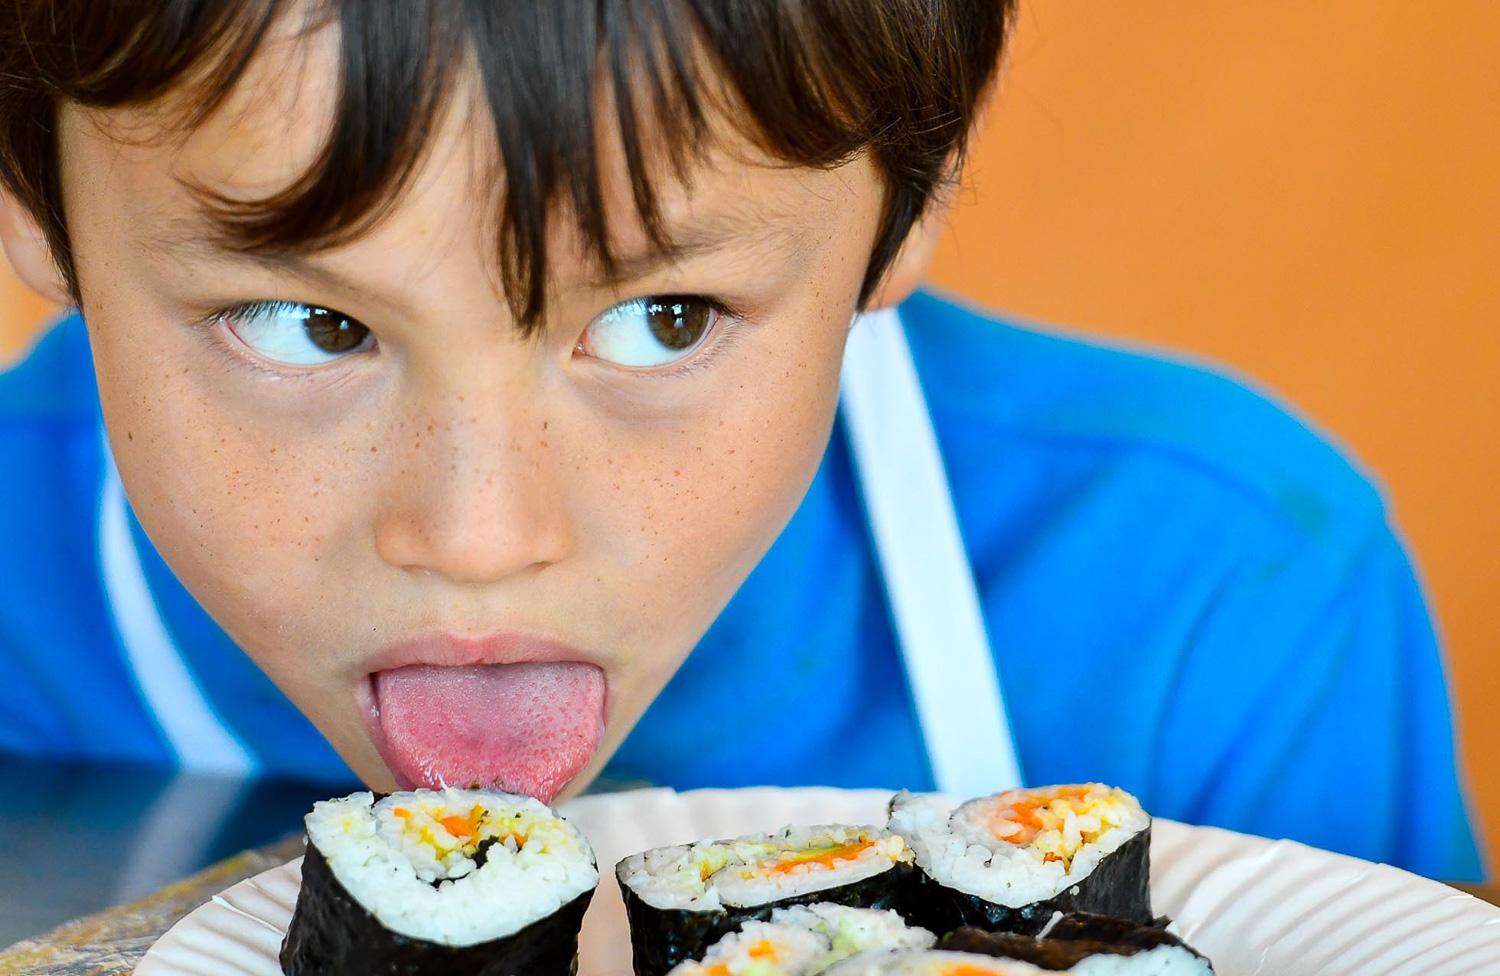 Second Place Feature:  Joey Duffield, 8, uses his tongue to get a taste of sushi he made during a cooking class at Taste Buds Kitchen in Beverly, Wednesday, Oct. 18, 2017. [Wicked Local Staff Photo / David Sokol]